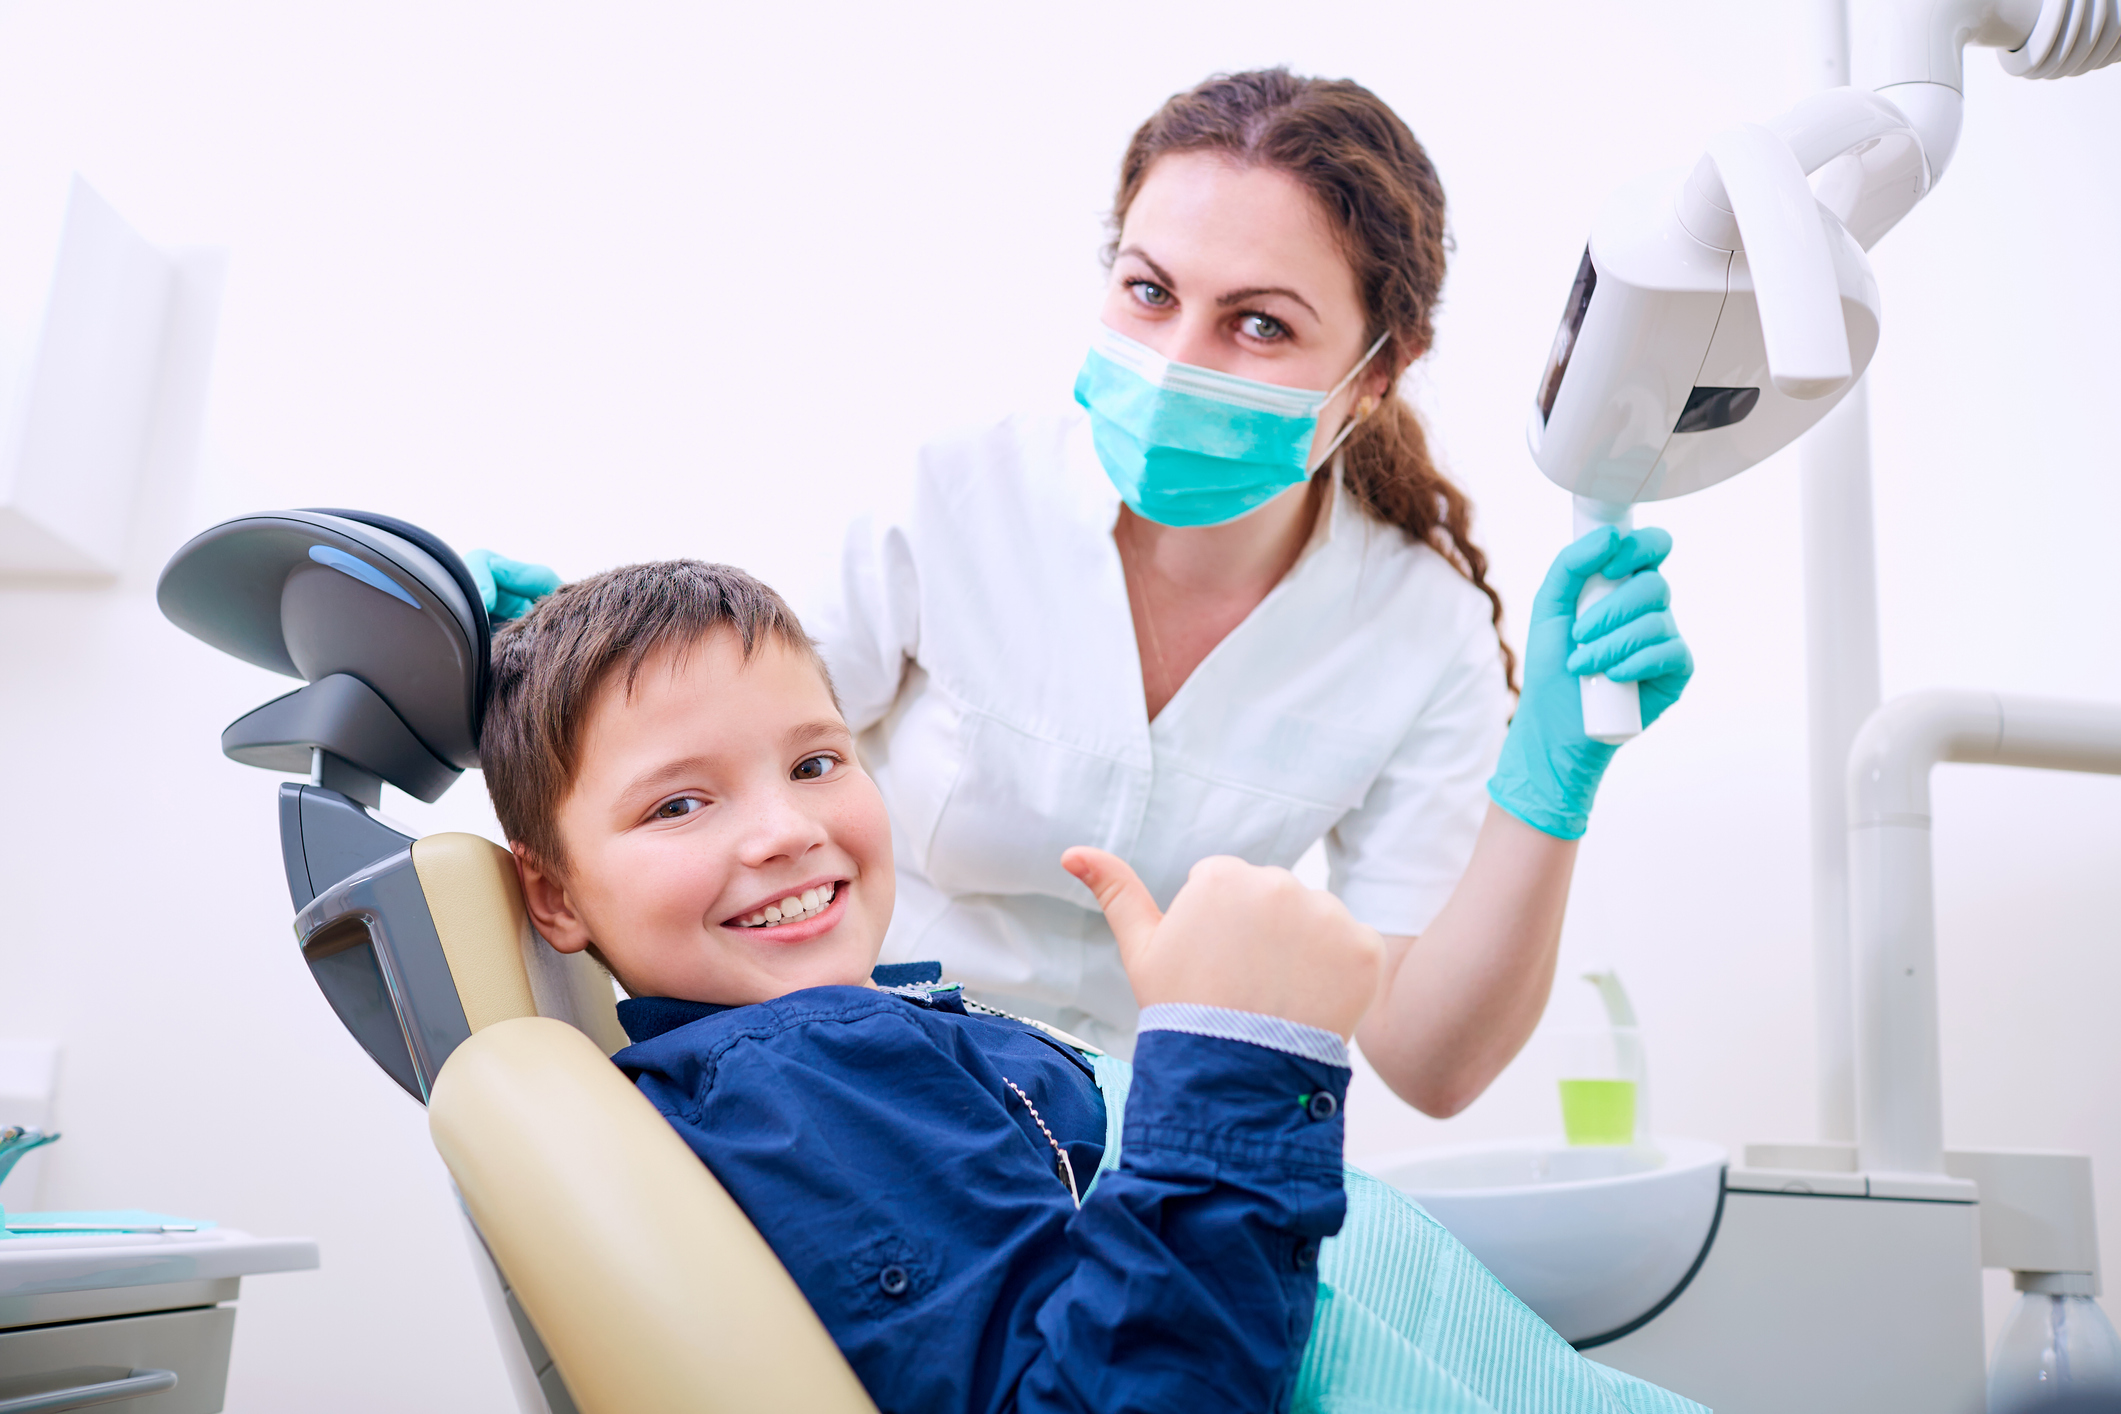 Dental Infections in Children Tied to Heart Disease Risk in Adults